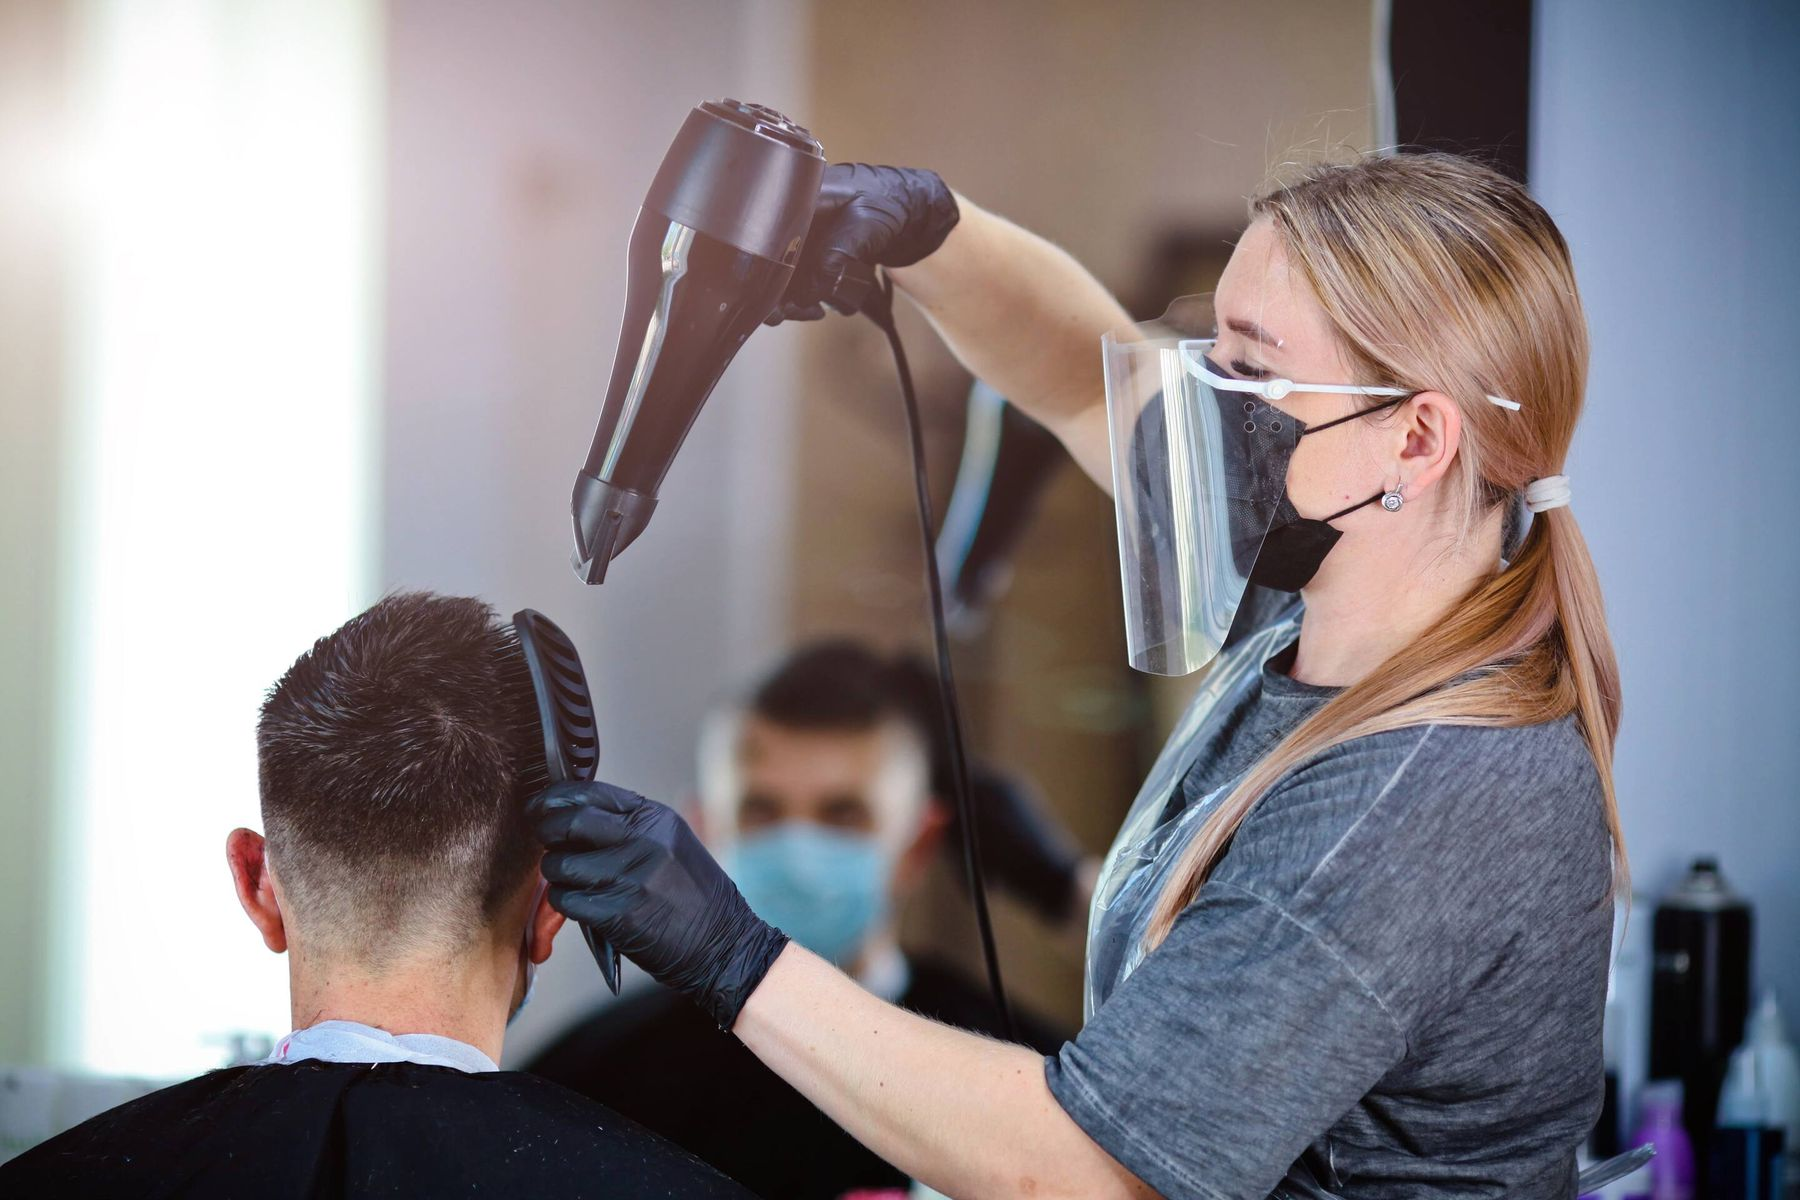 7 Things to Note Before Your Salon Visit Post Lockdown